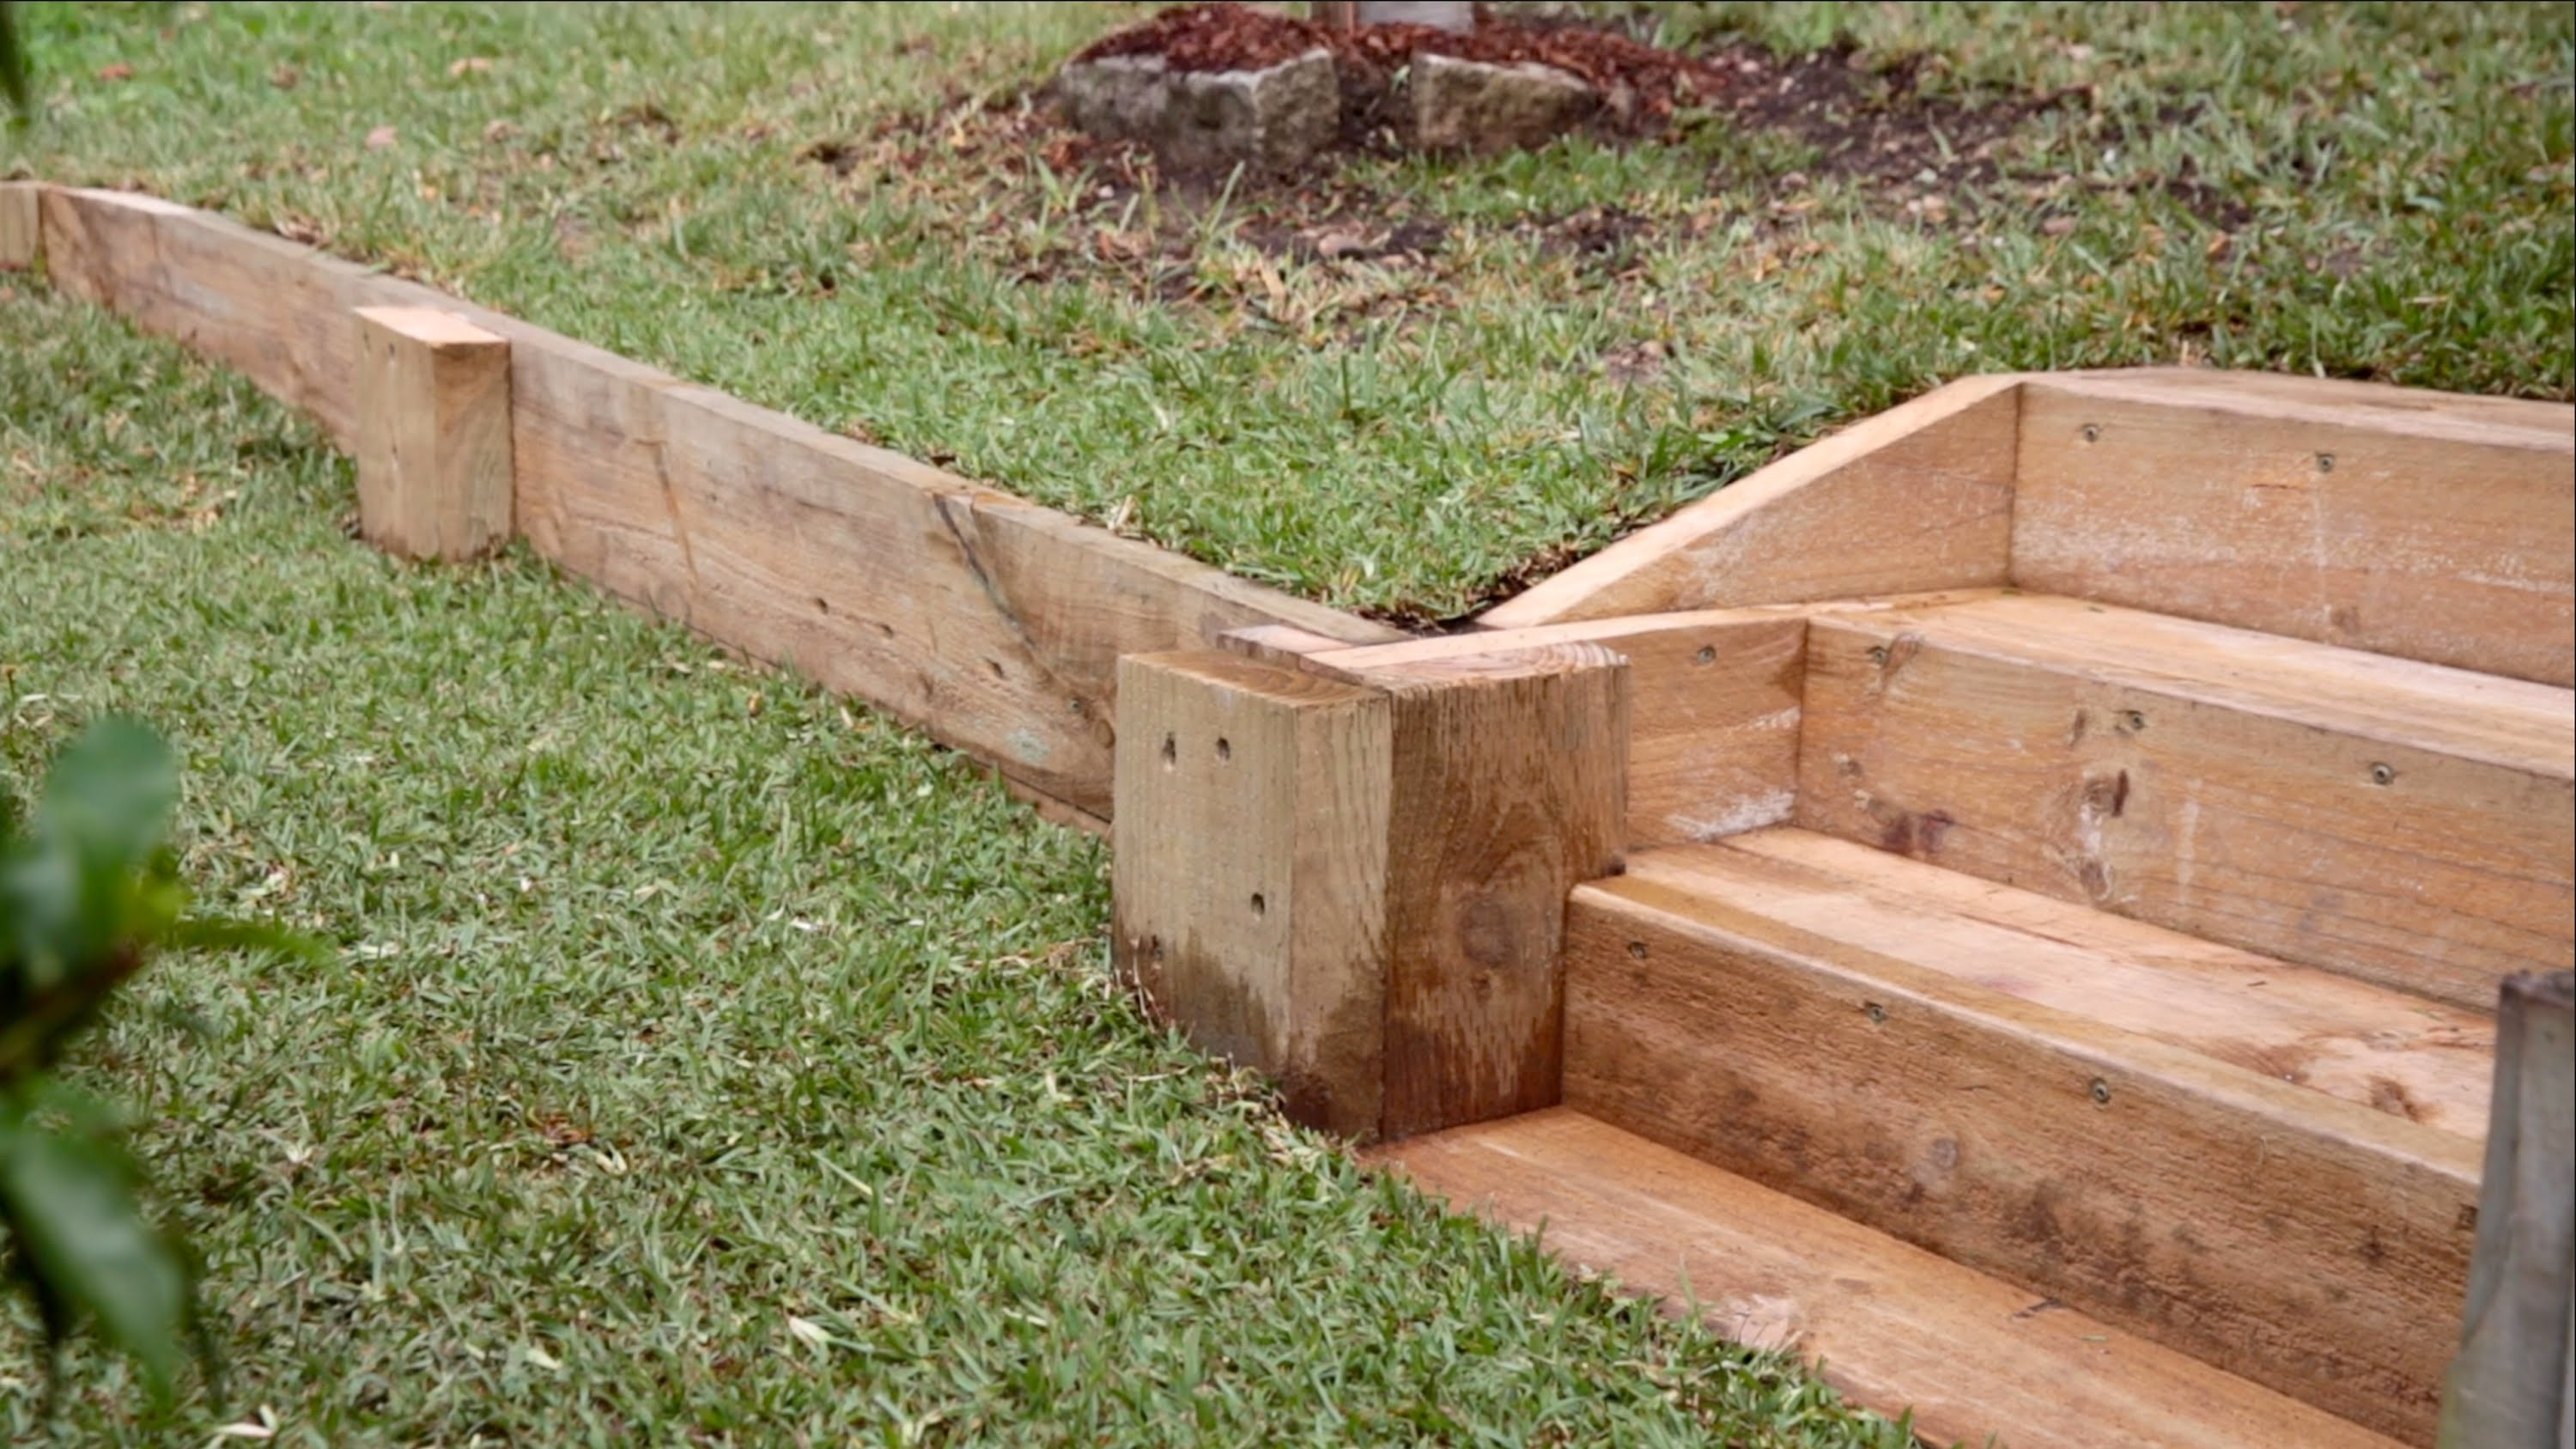 Easy Diy Retaining Wall Youtube For Landscape Timbers Retaining Wall Durable Landscape Timbers Retaining Wall For Great Decoration